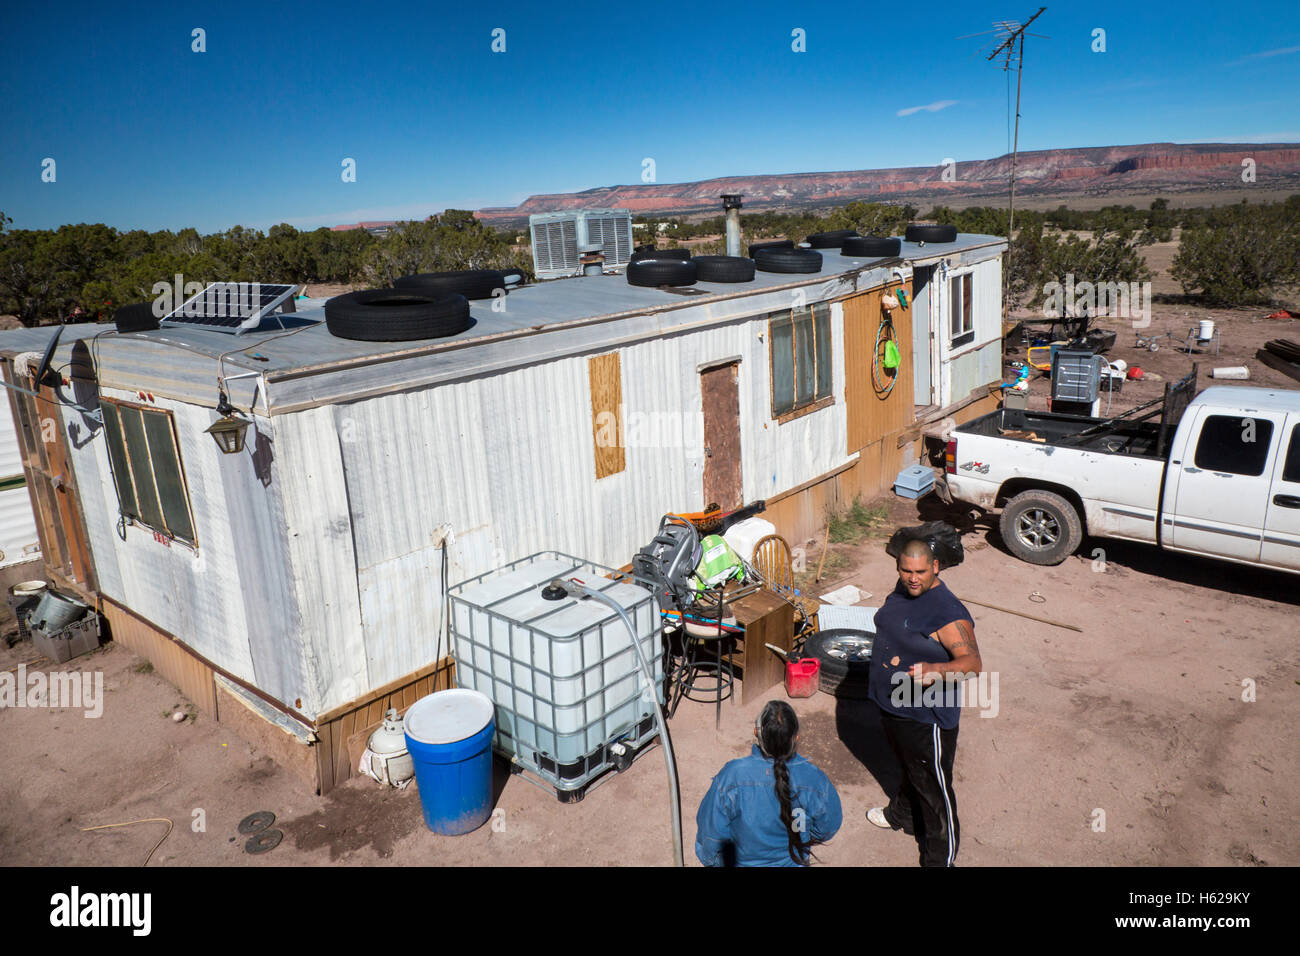 Stock photo thoreau new mexico darlene arviso of st bonaventure indian mission delivers water to a navajo family without a water supply